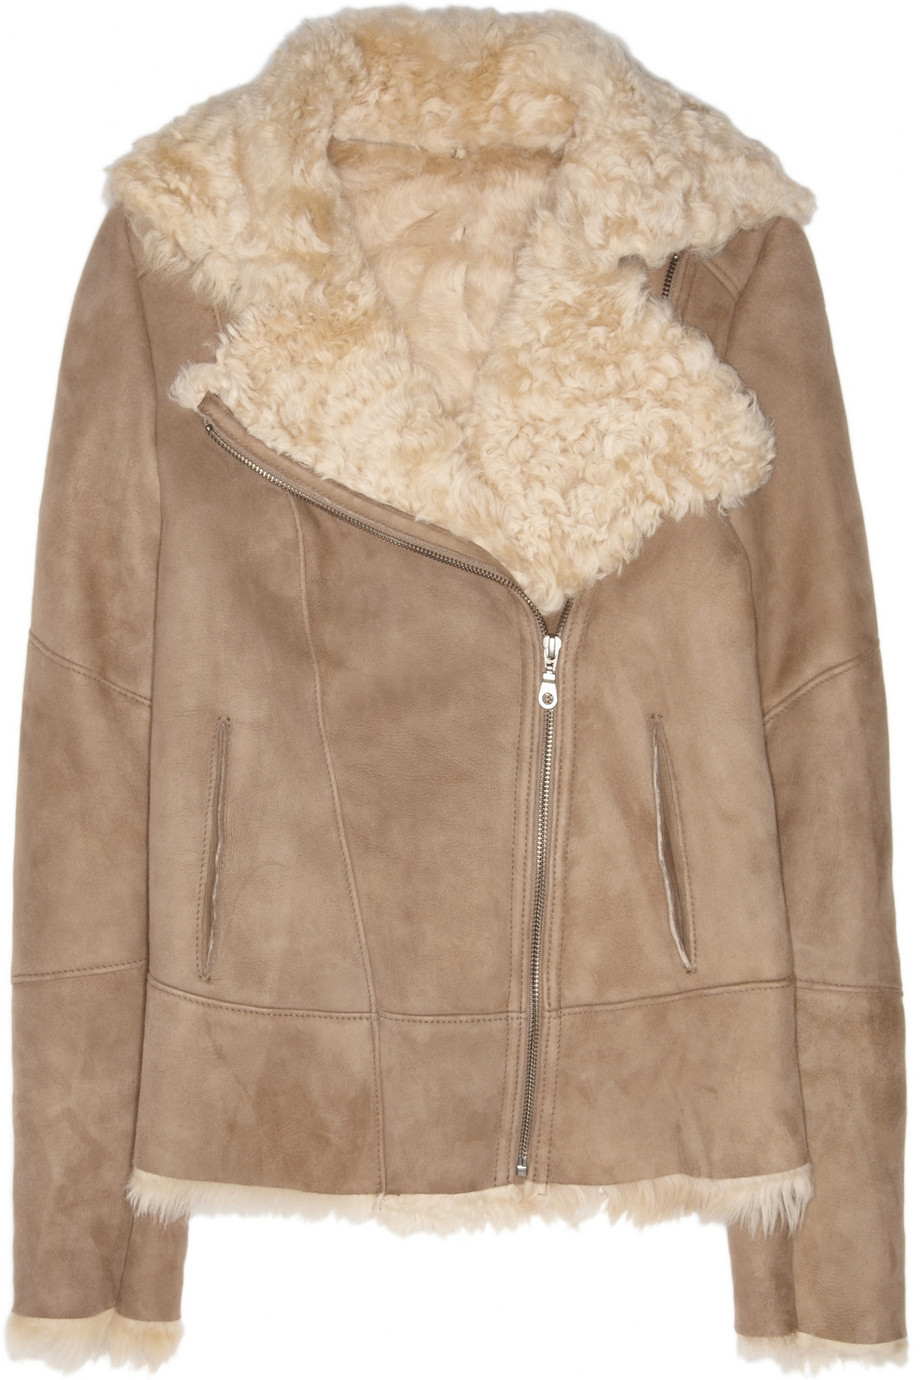 Shearling aviator jacket   Karl by Karl Donoghue   THE OUTNET